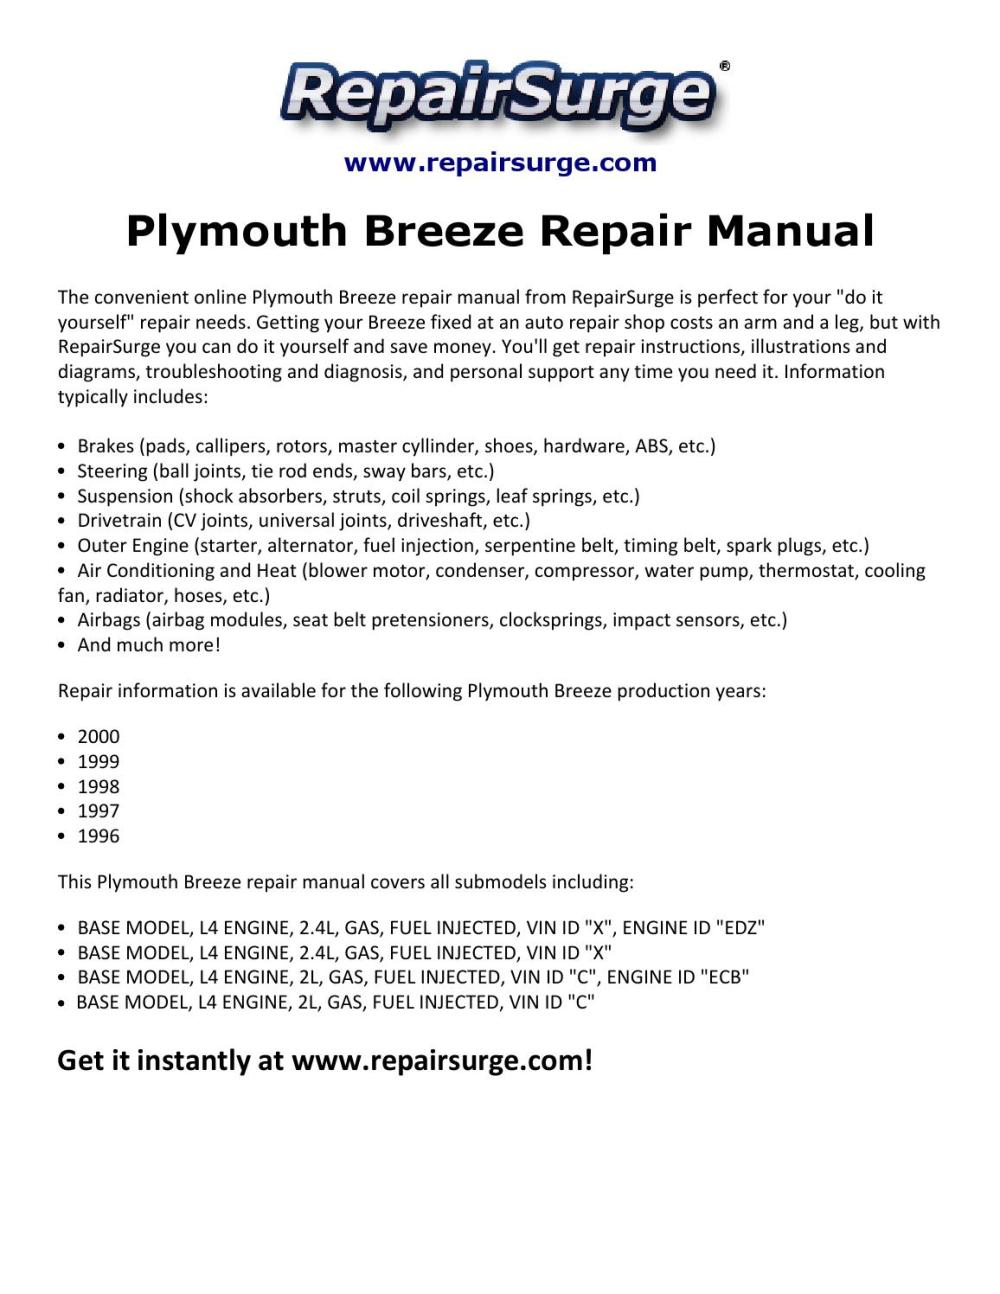 medium resolution of plymouth breeze repair manual 1996 2000 by david williams issuu